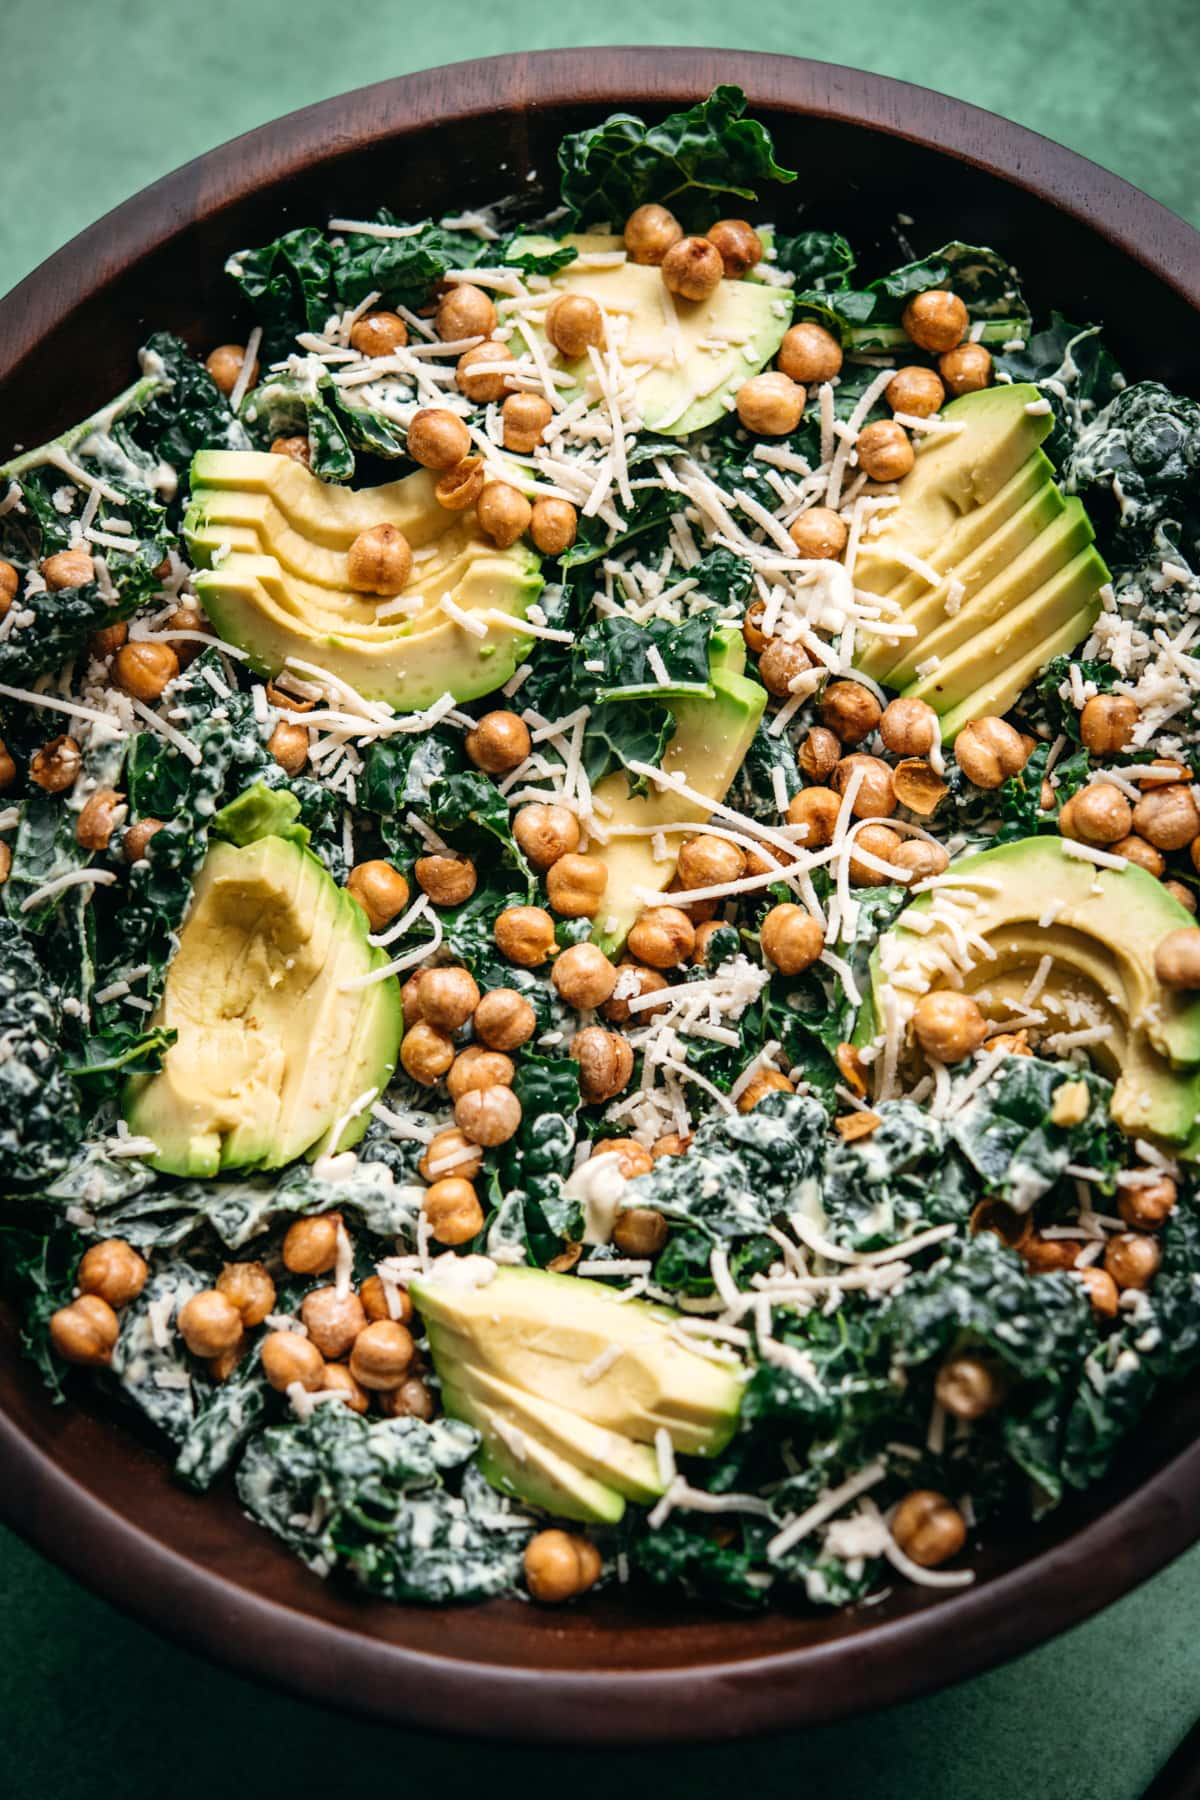 close up view of vegan kale tahini caesar salad with chickpeas.